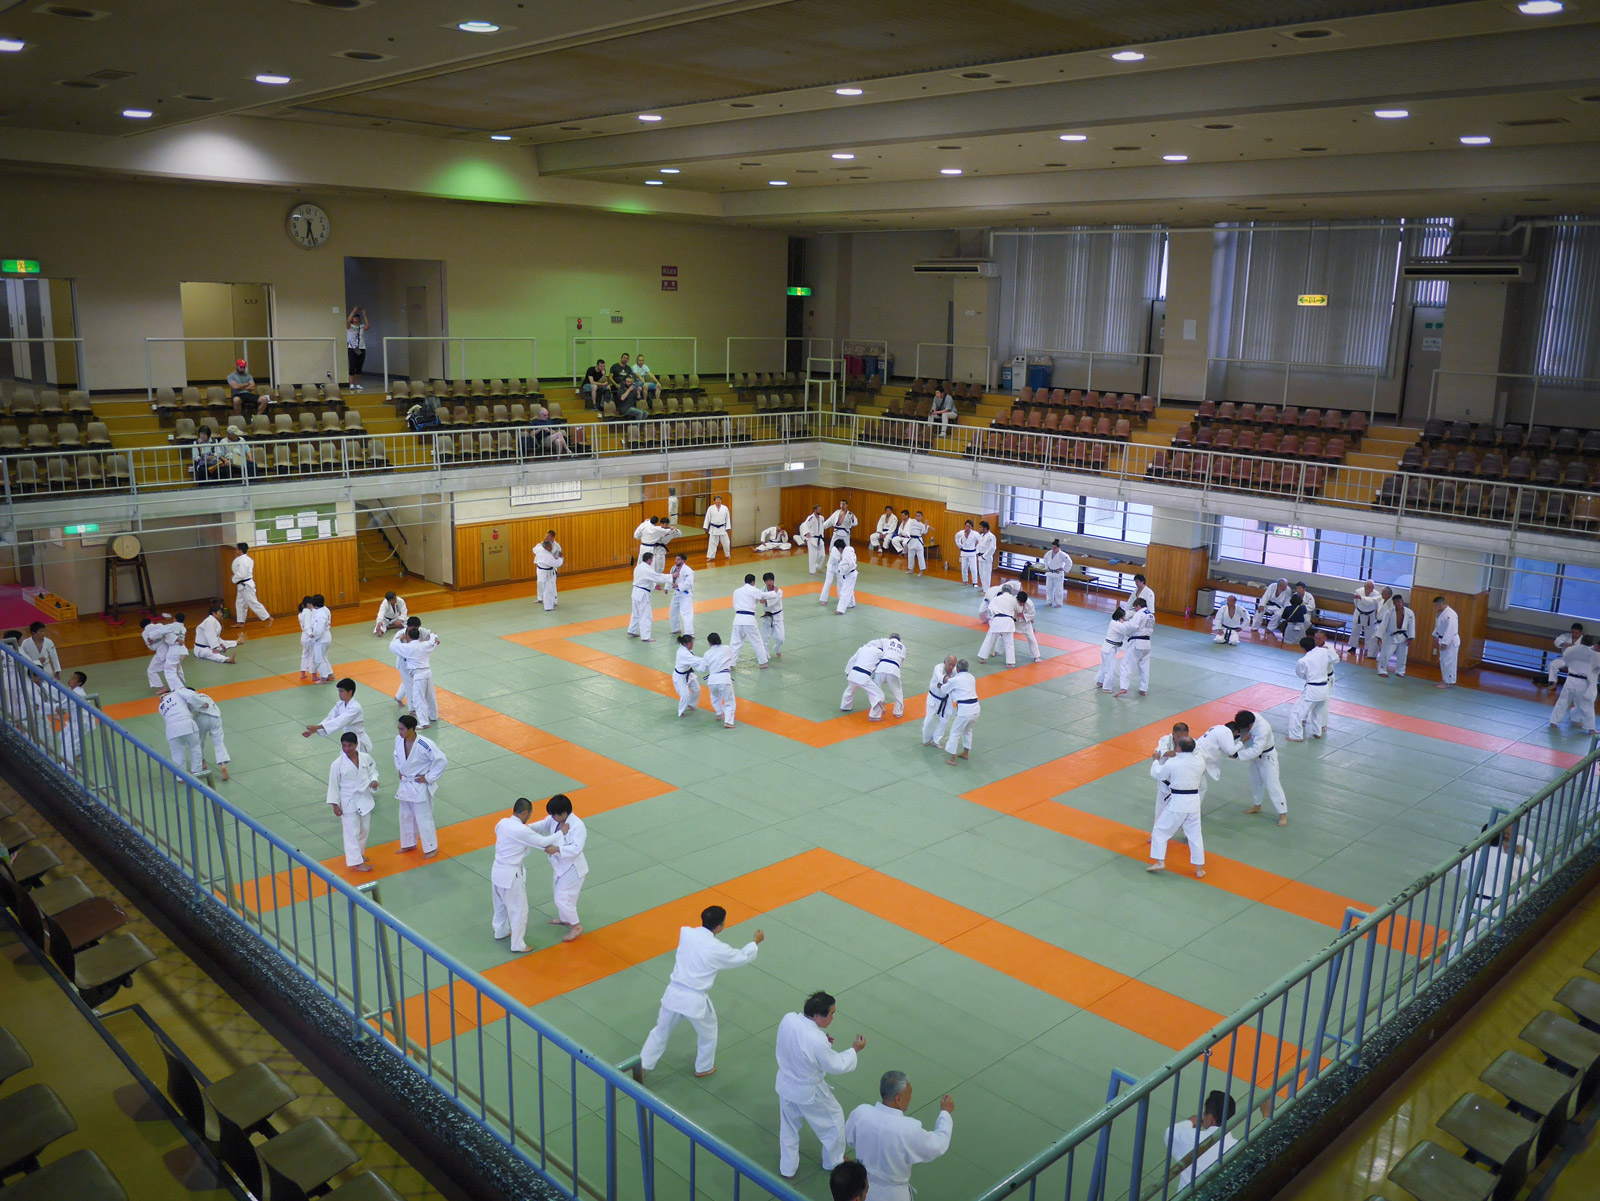 Round 1, Fight! Watch Martial Arts at the Kodokan Judo Institute - Tokyo, Japan